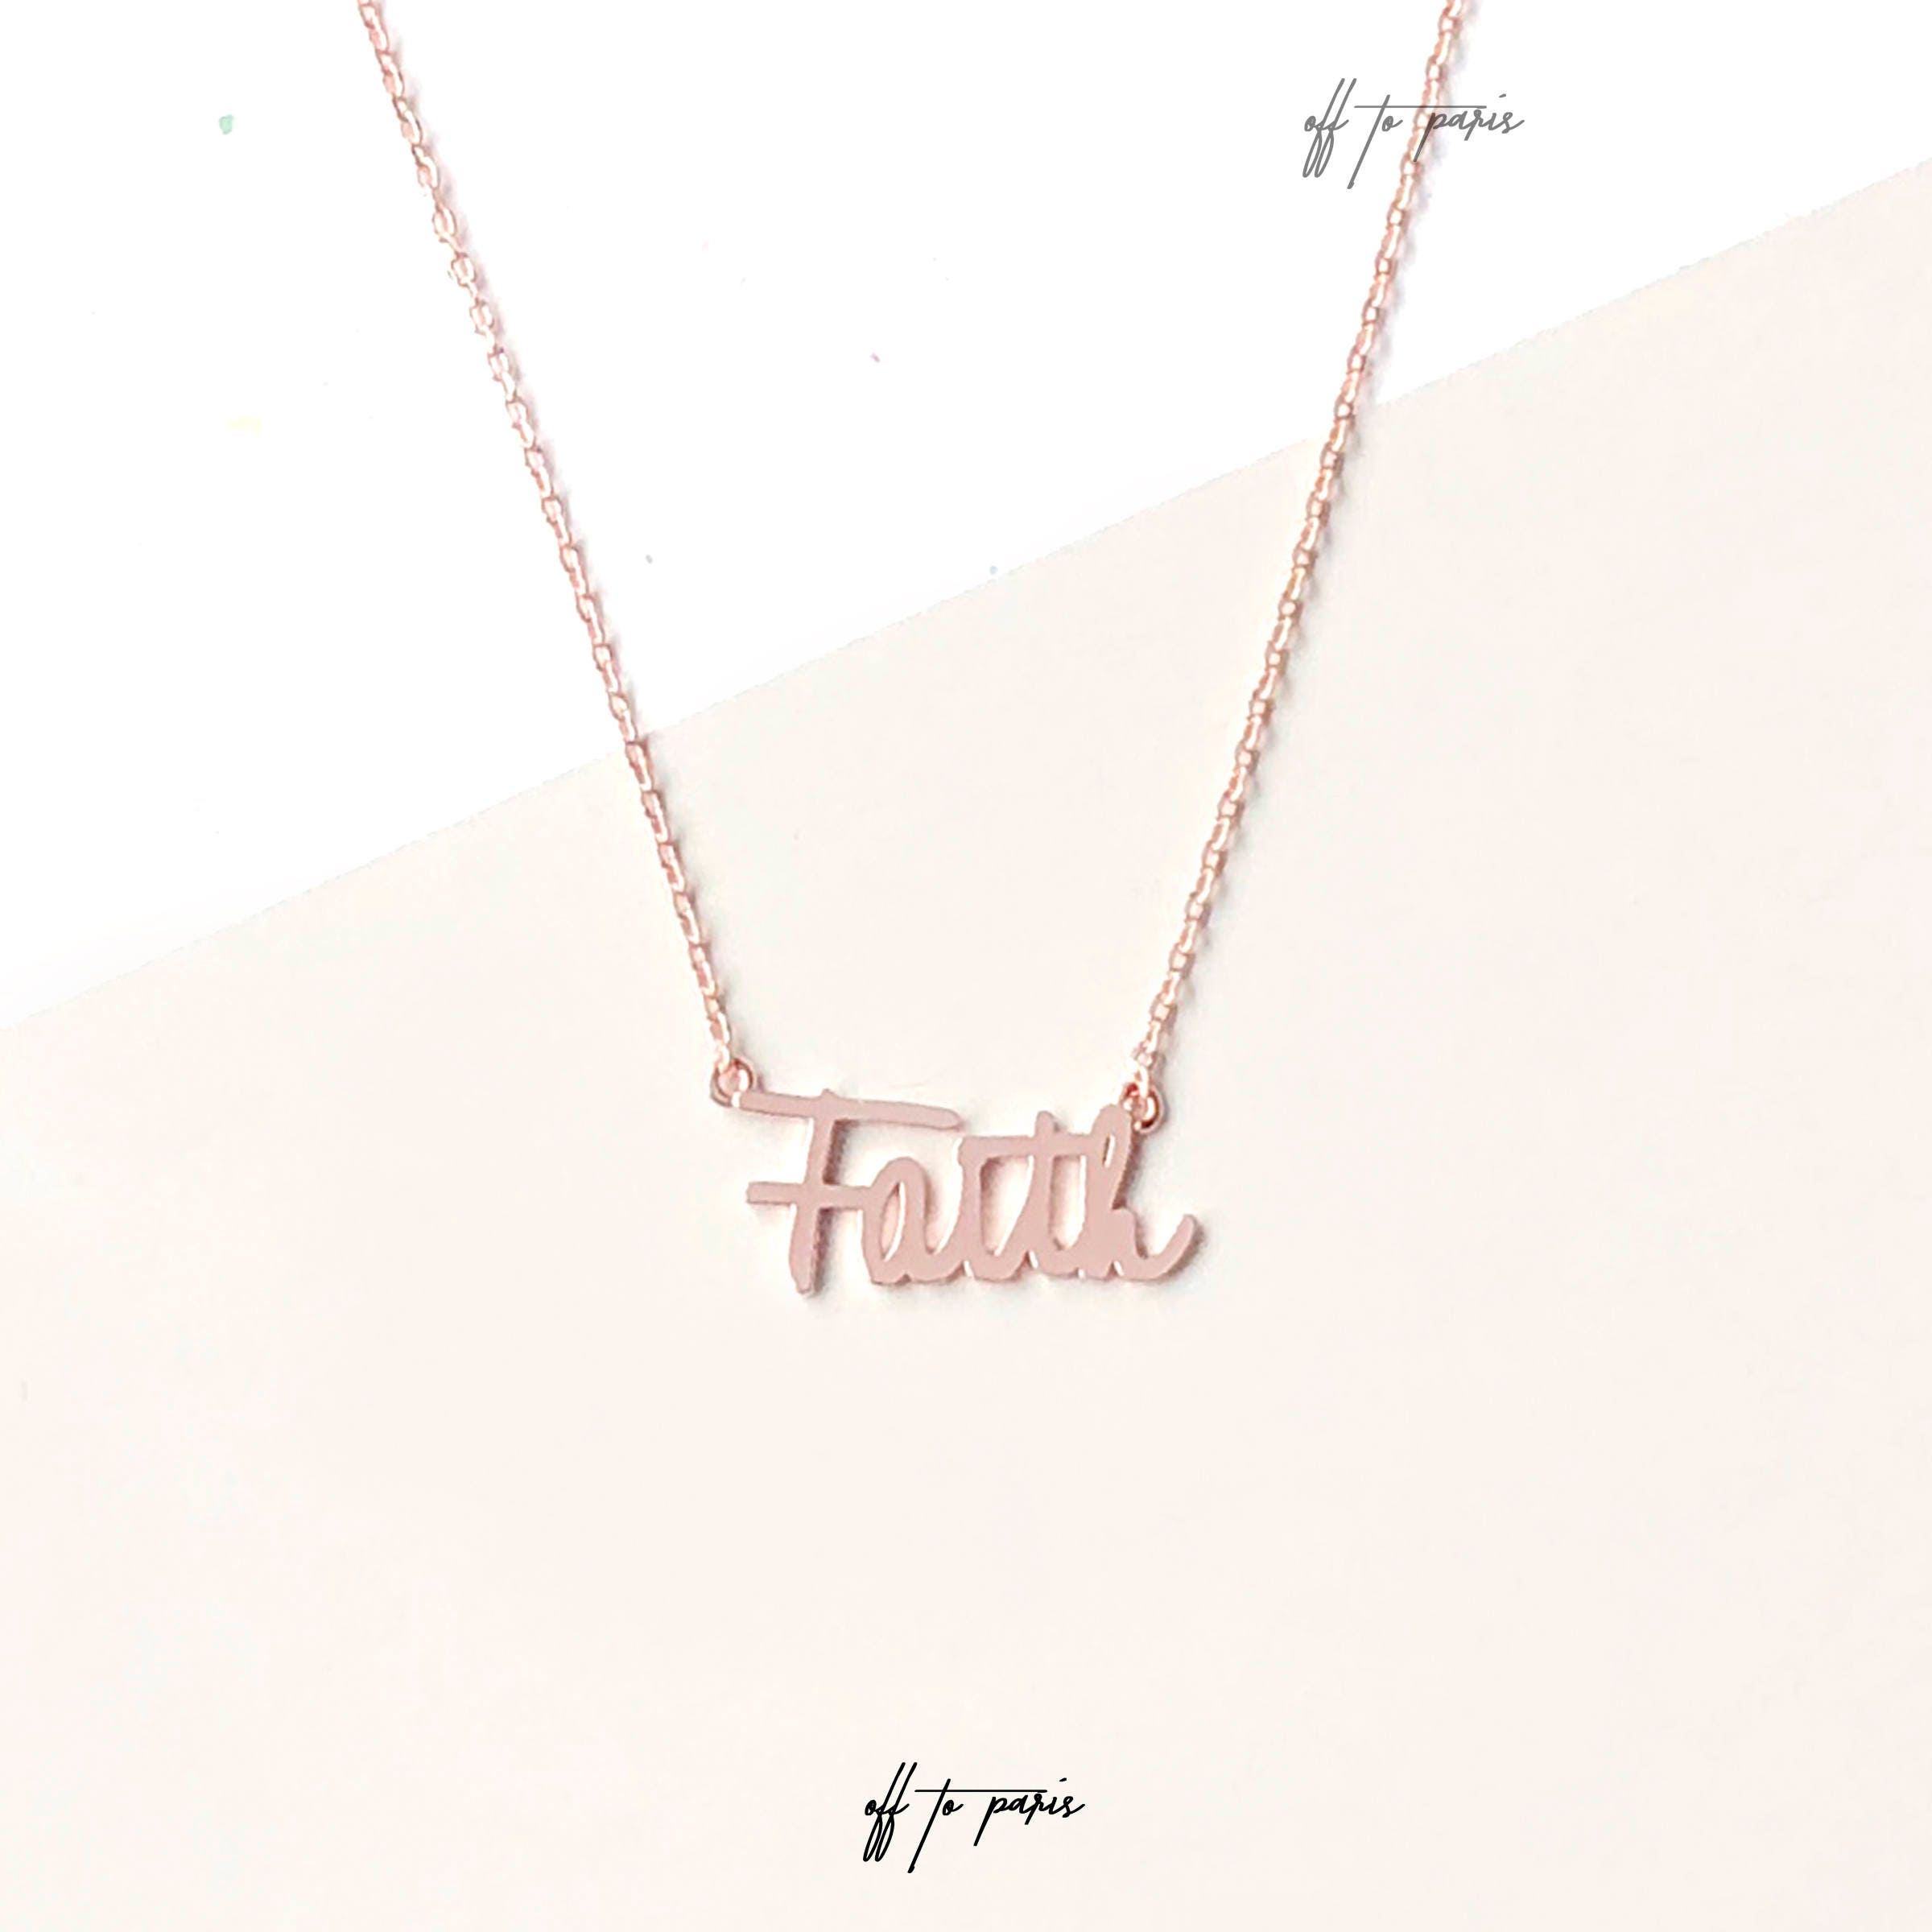 products pendant b gold script faith handwritten disc kookii engraved writing necklace